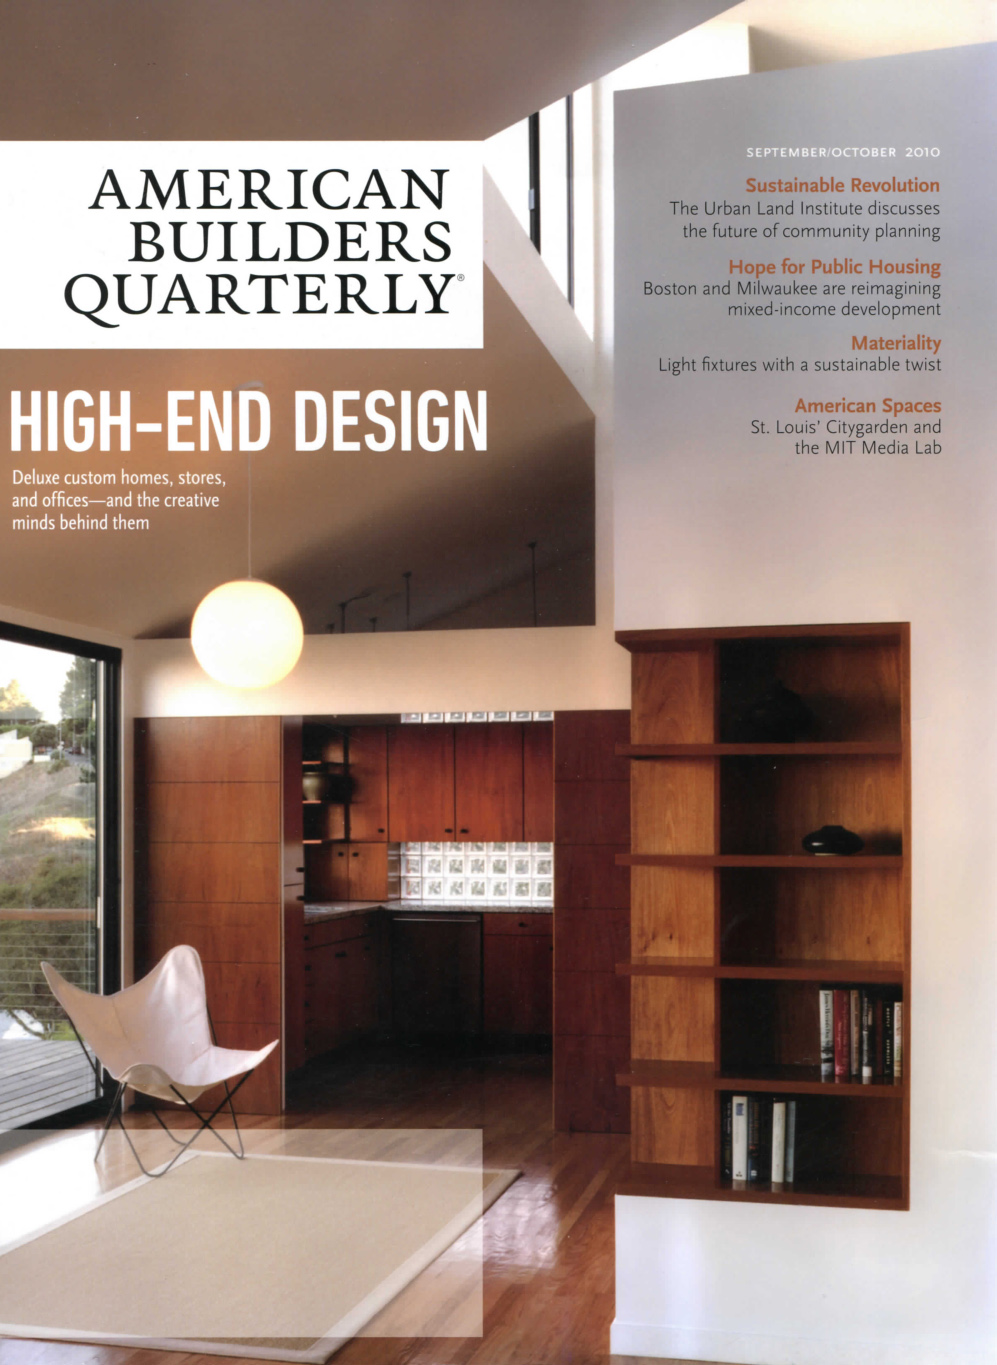 Fogarty finger american builders quarterly for American builders